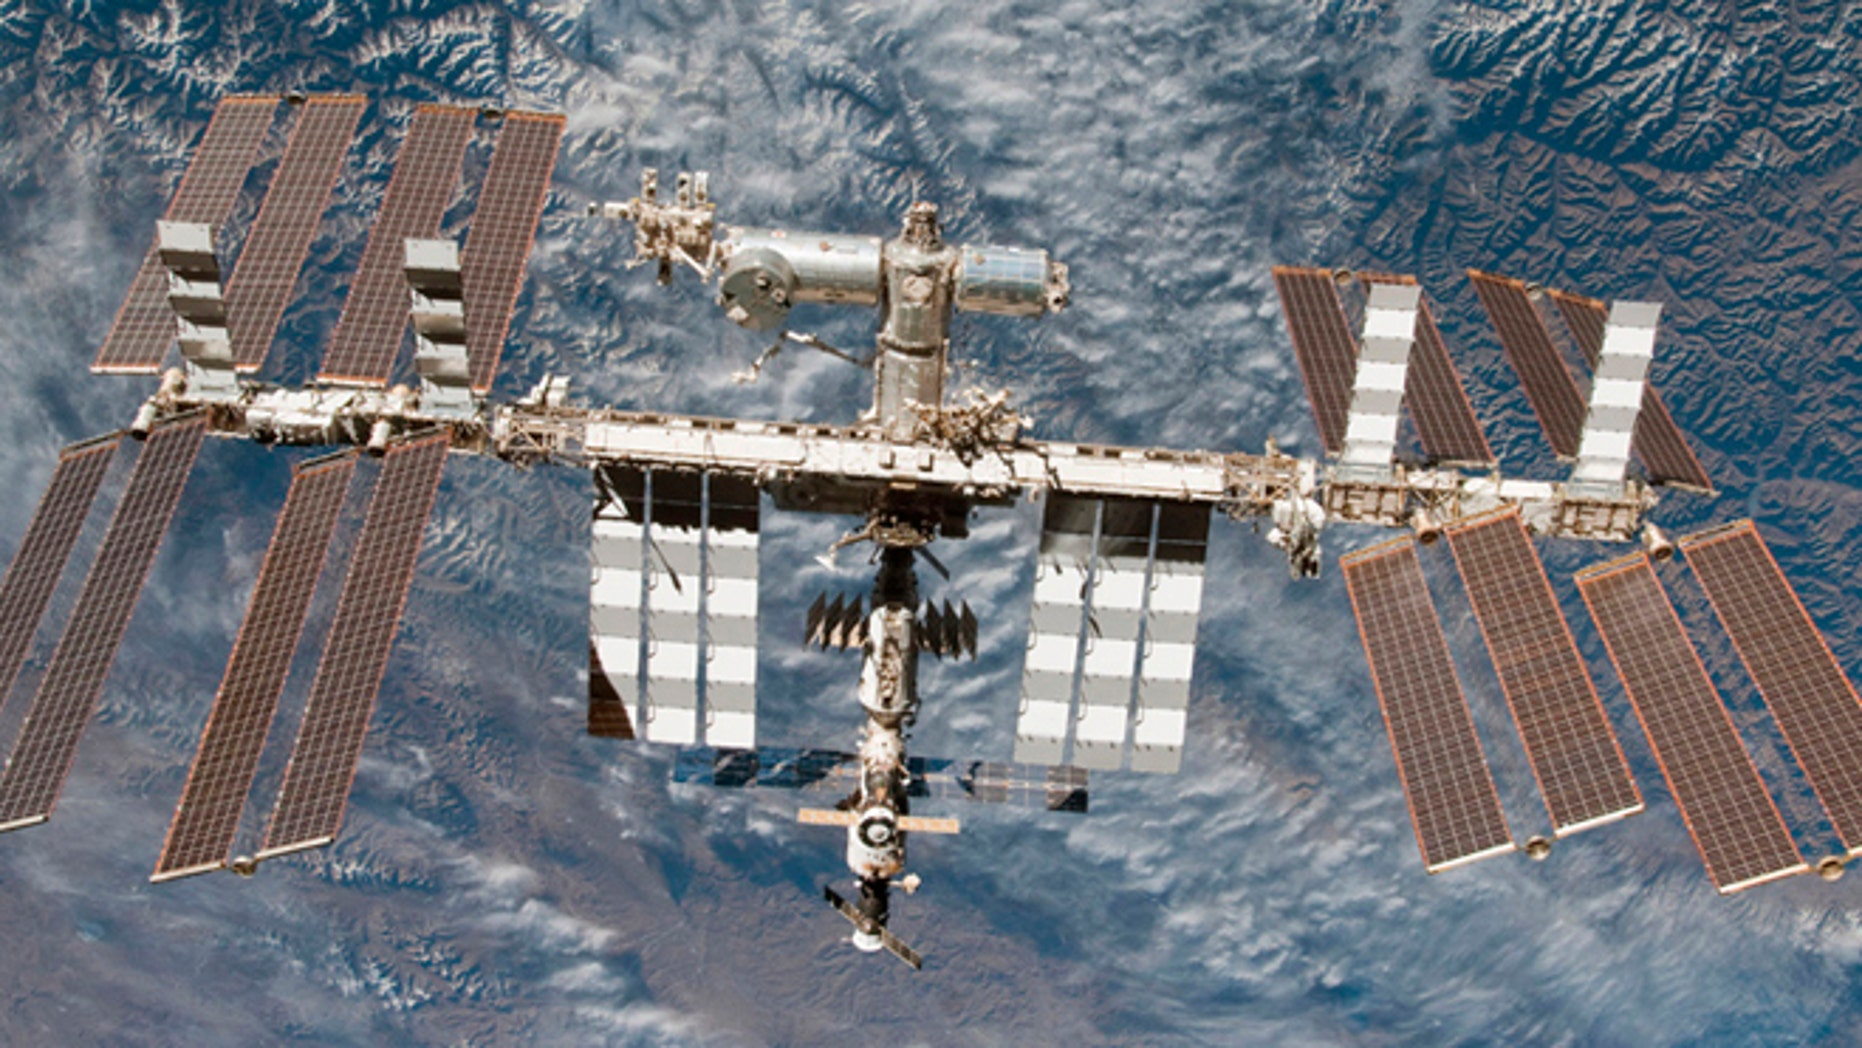 Backdropped by Earth, the International Space Station is seen in this image photographed by an STS-130 crew member on space shuttle Endeavour after the station and shuttle began their post-undocking relative separation, in this undated NASA handout photo.